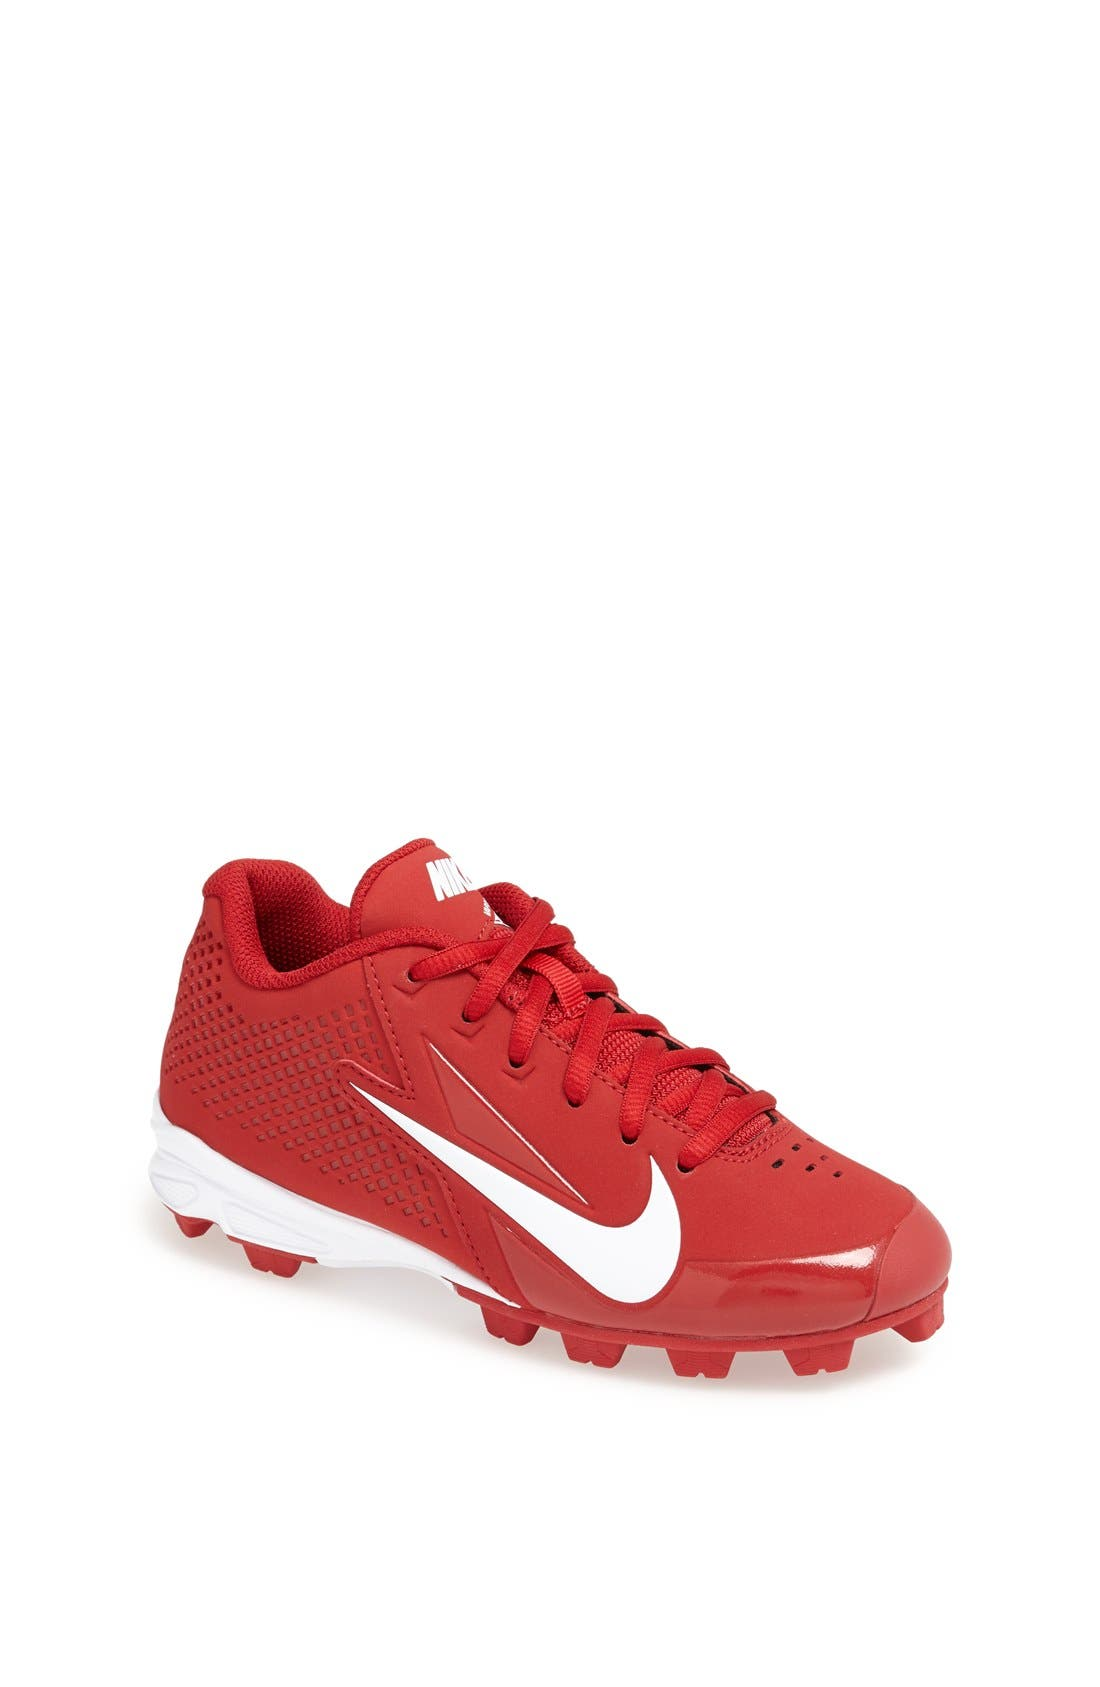 Main Image - Nike 'Vapor Keystone Low' Baseball Cleat  (Little Kid & Big Kid)